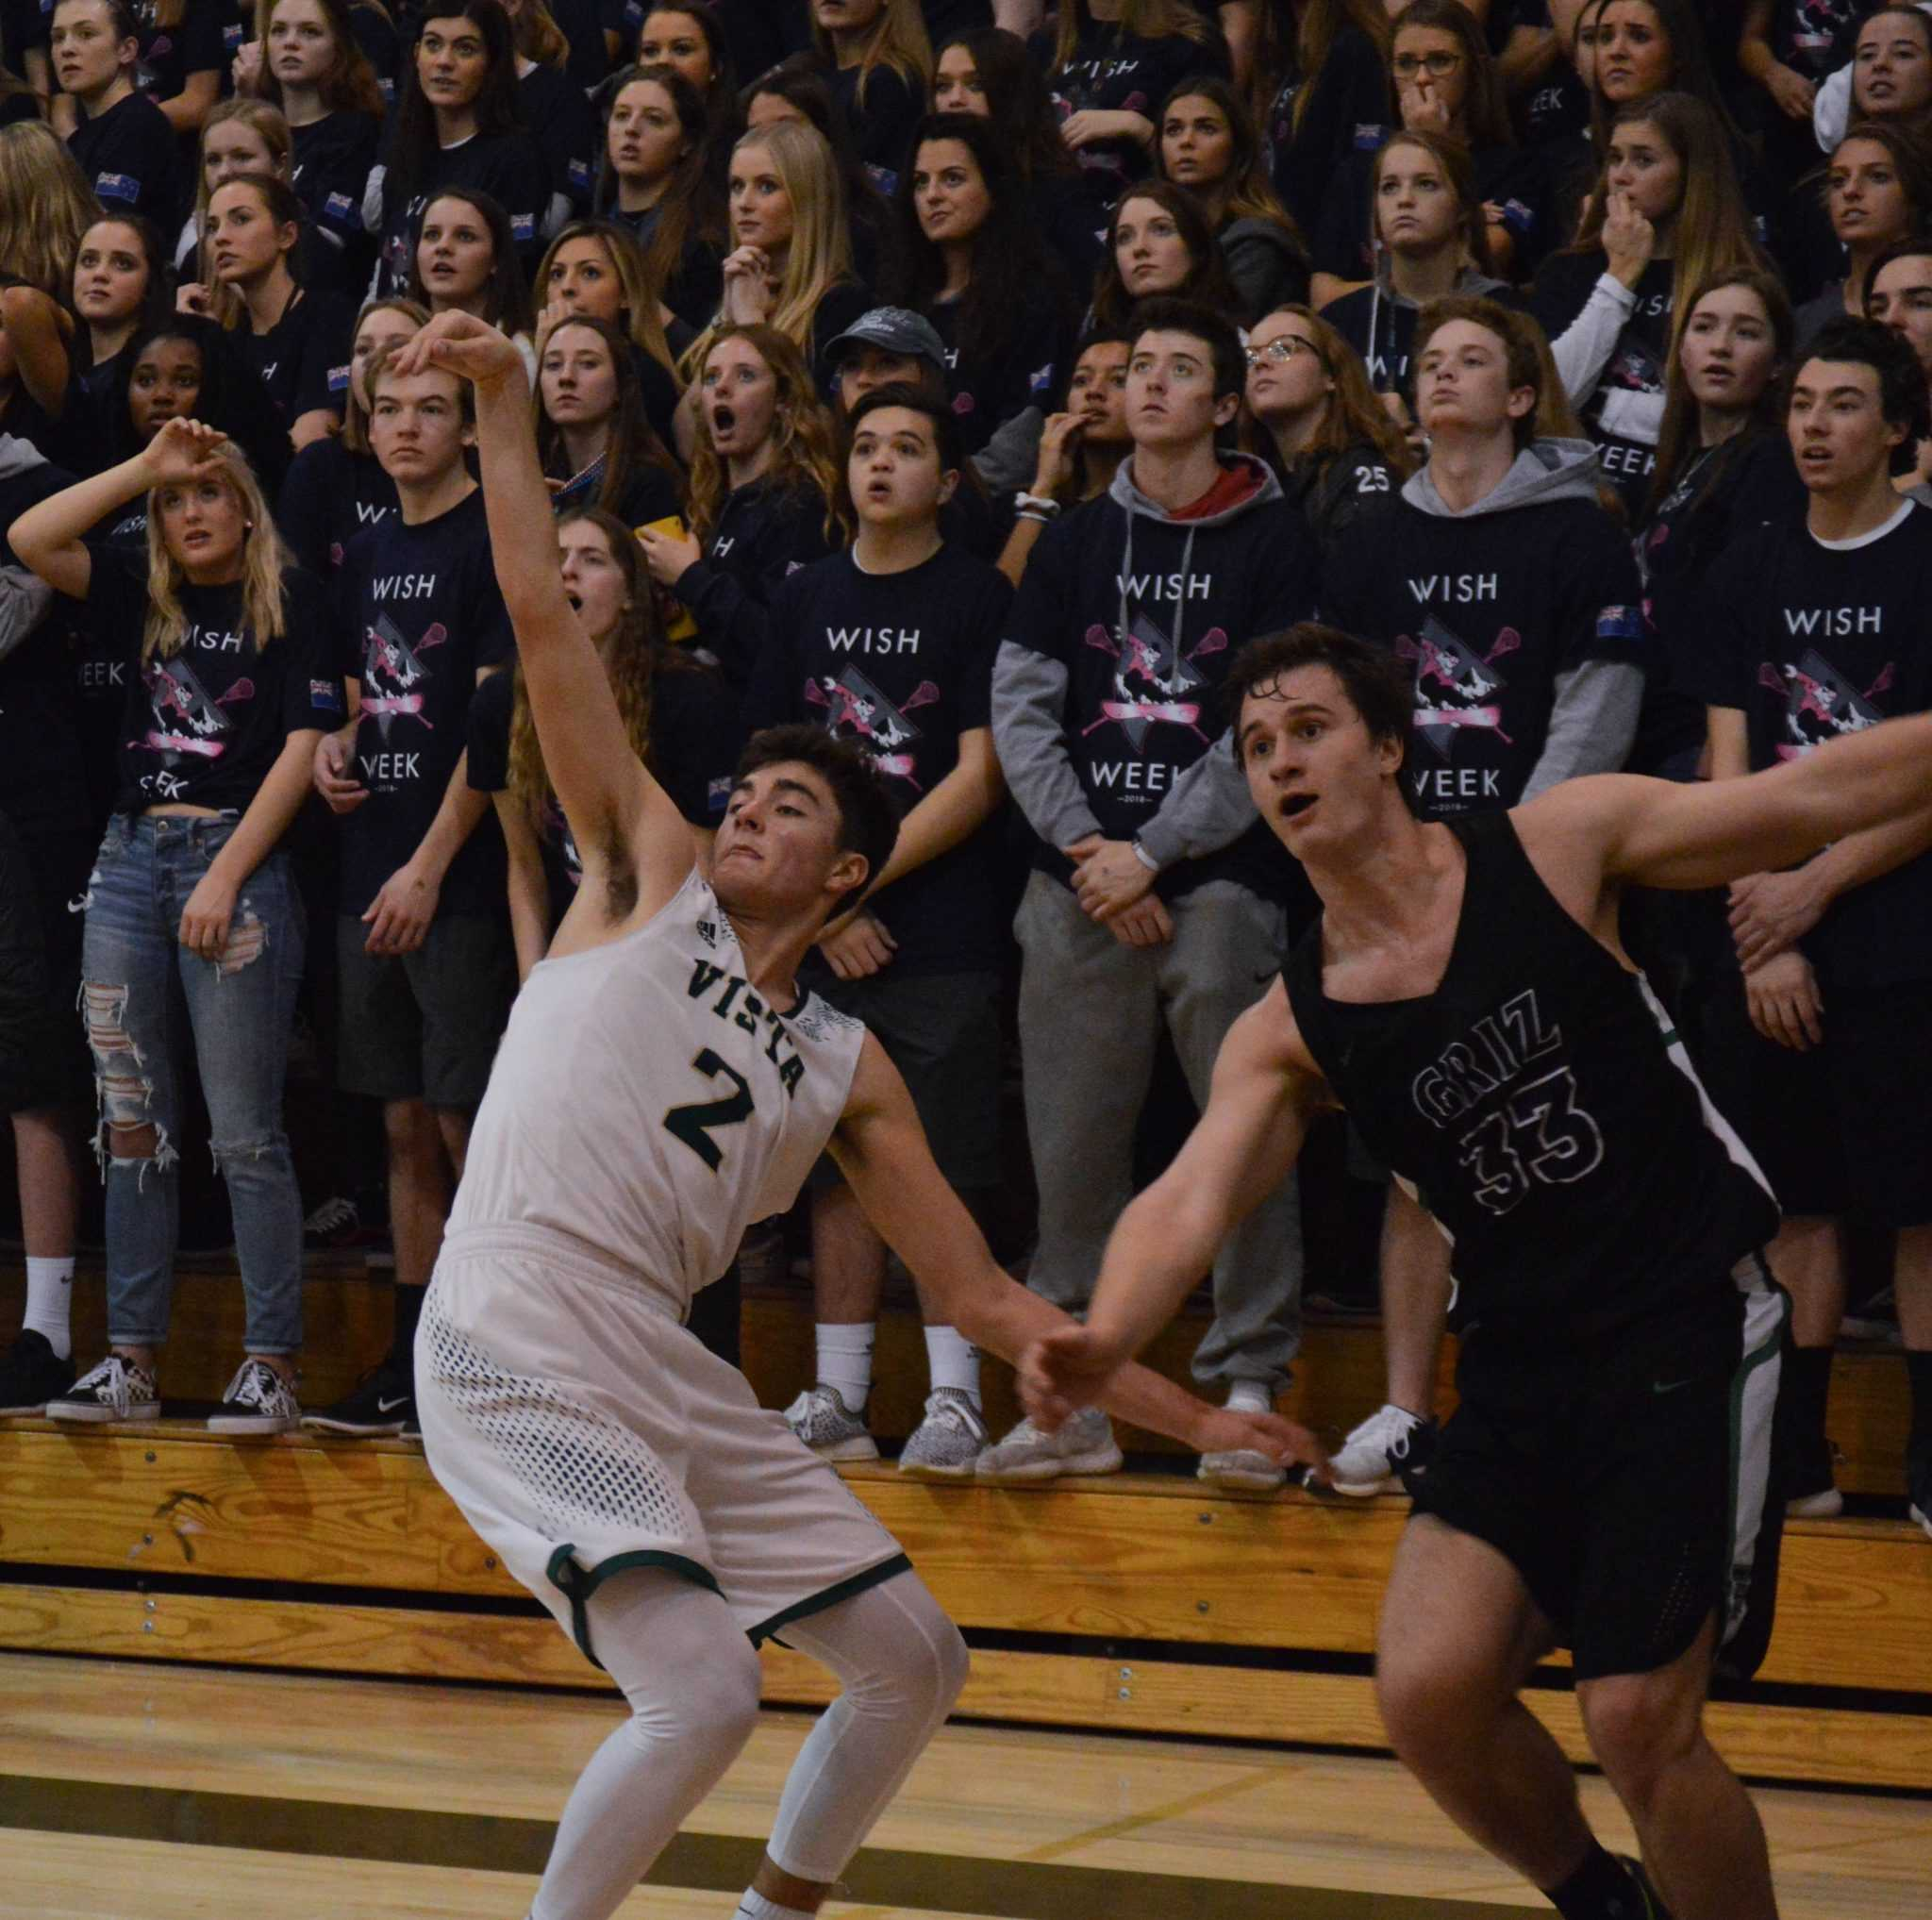 PHOTOS: Boys Varsity Basketball vs. ThunderRidge